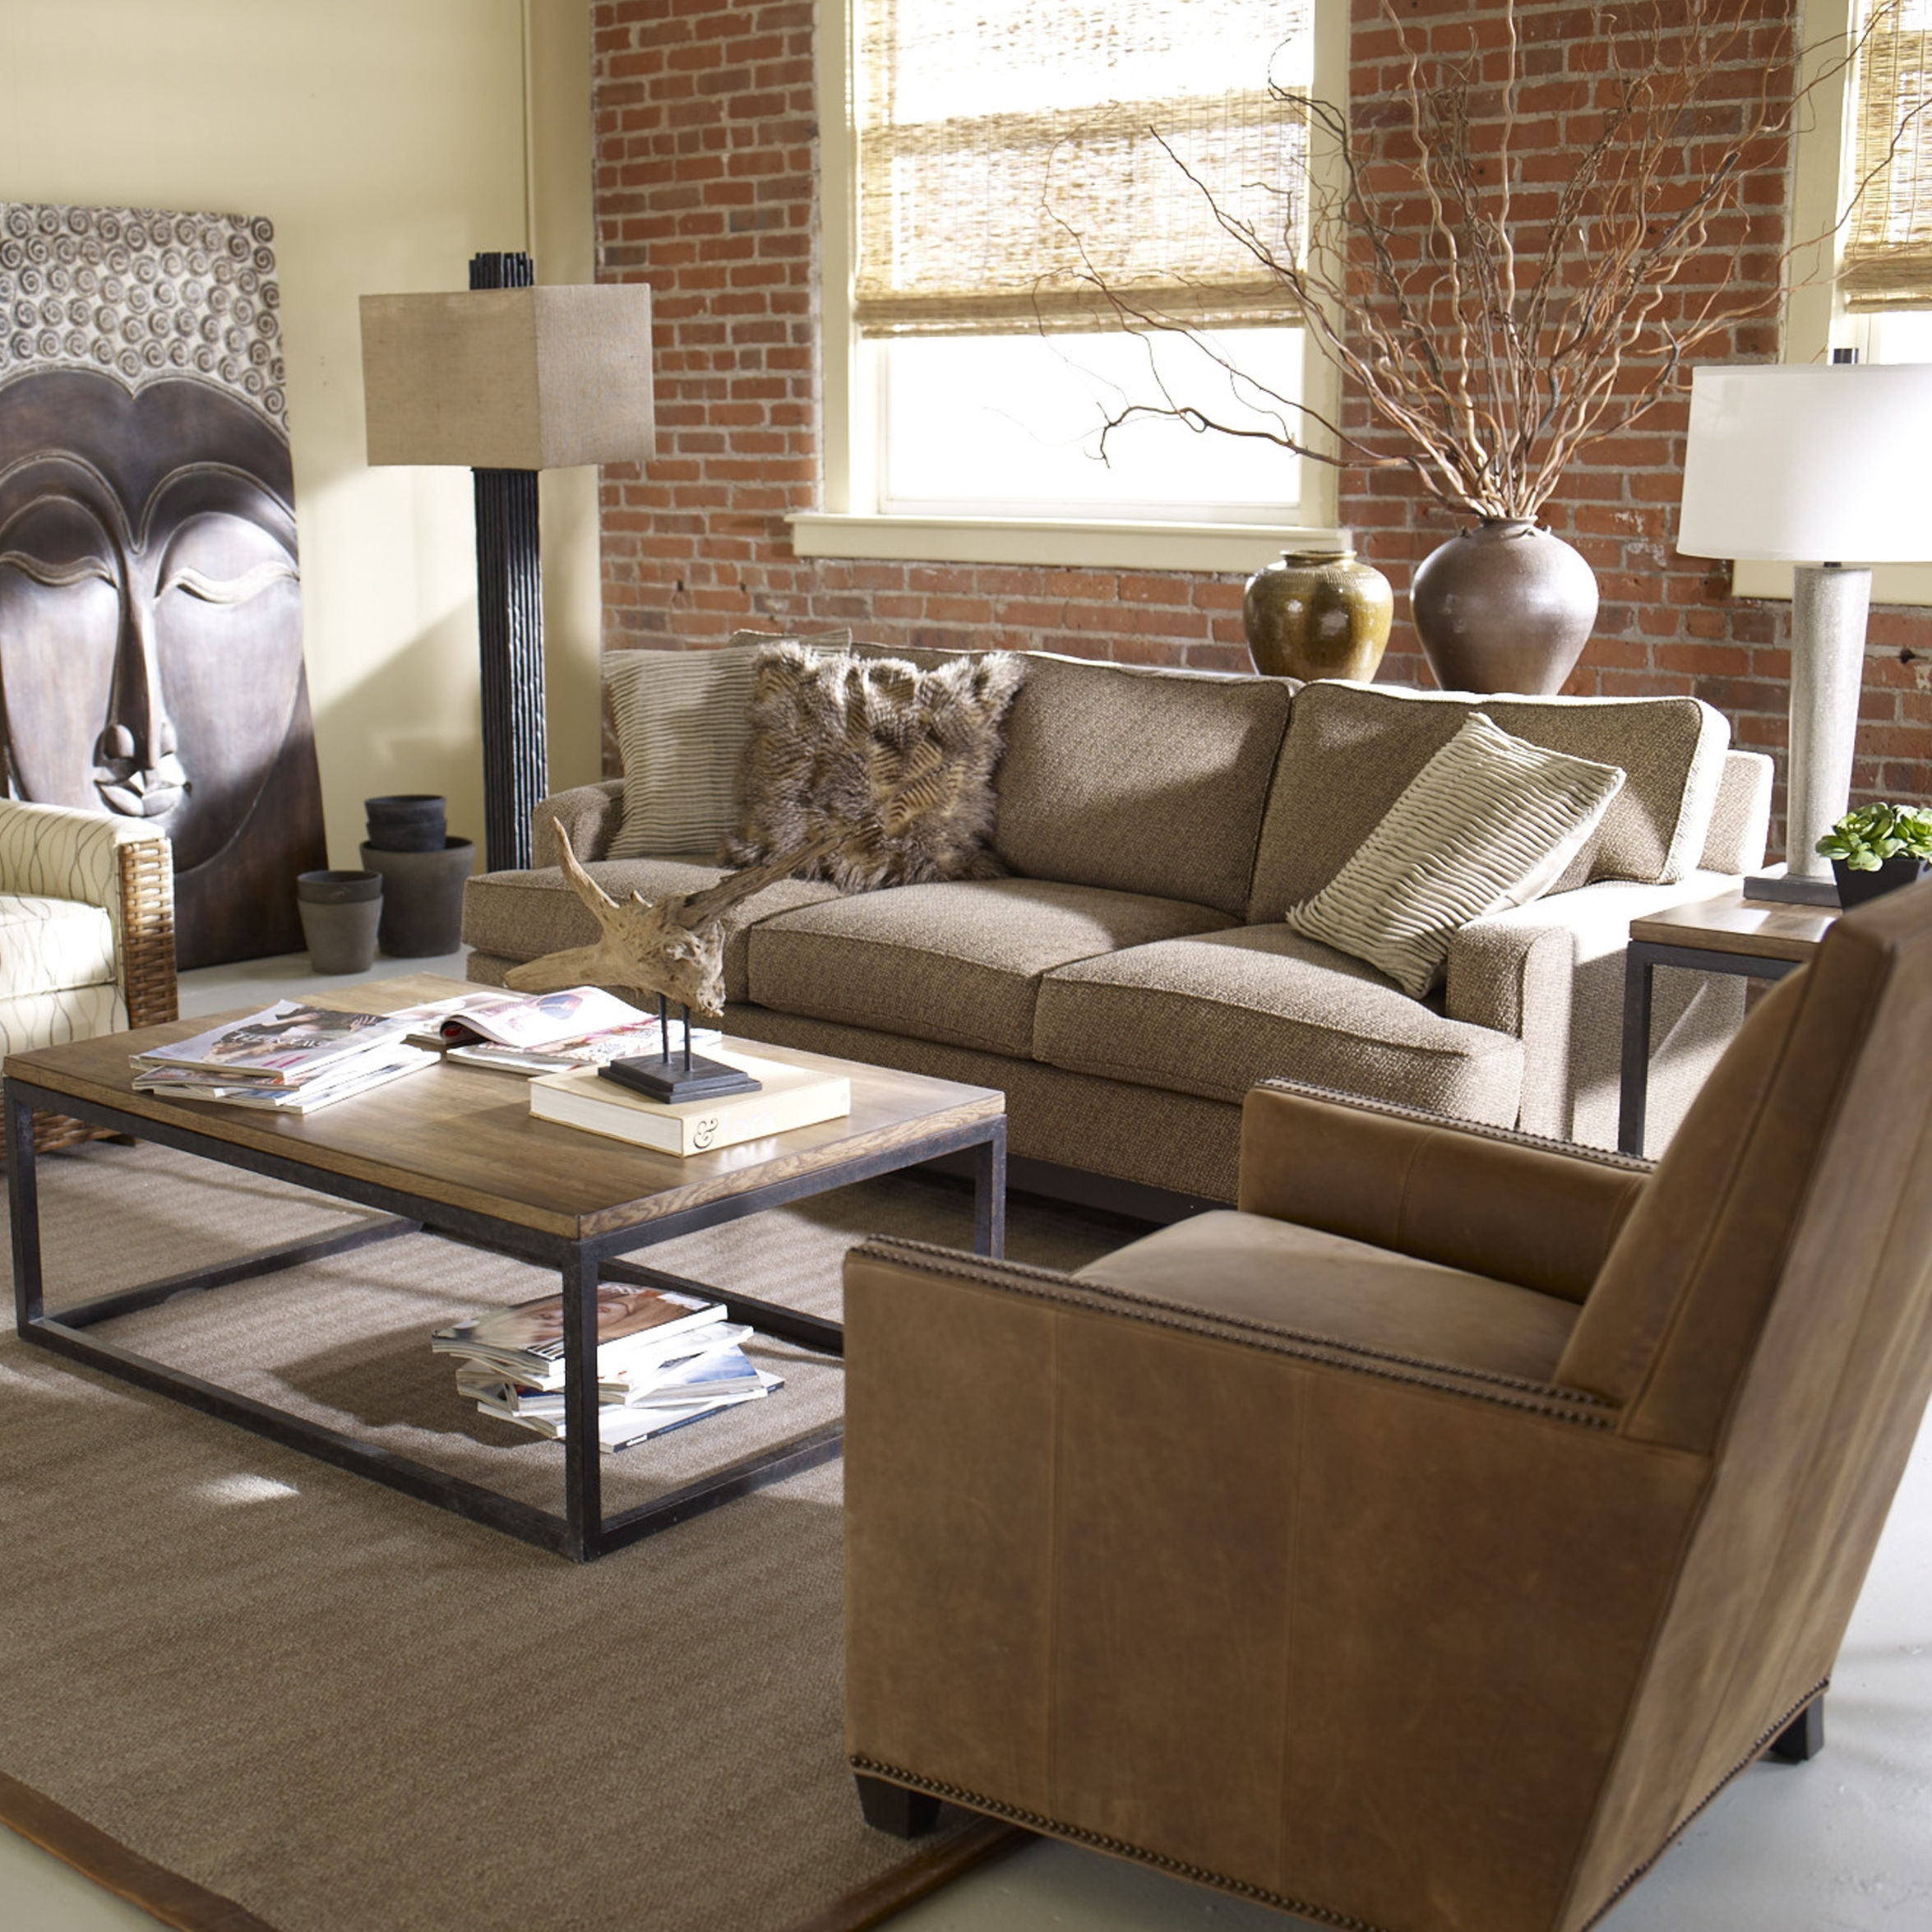 New Cozy Sectional Sofas 58 About Remodel Sofas And Couches Ideas In Cozy Sectional Sofas (#11 of 12)